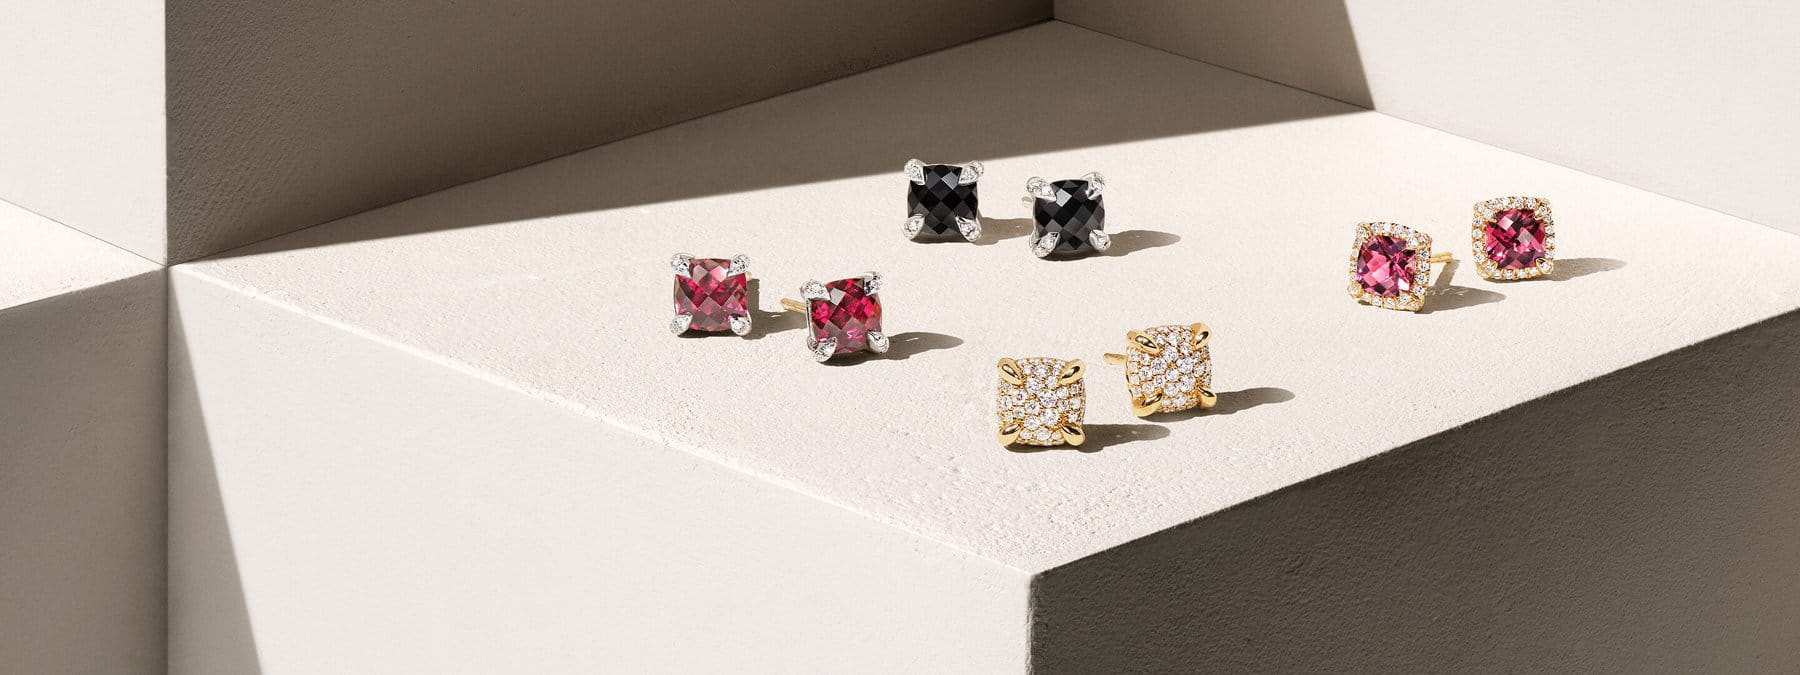 "A color photograph shows four pairs of David Yurman Châtelaine stud earrings for women atop a beige-hued stone shelf with hard shadows. The women's earrings are crafted from 18K yellow gold or sterling silver with garnet or black onyx and pavé diamond-encrusted bezels, prongs or cushion-shaped center ""stones."""